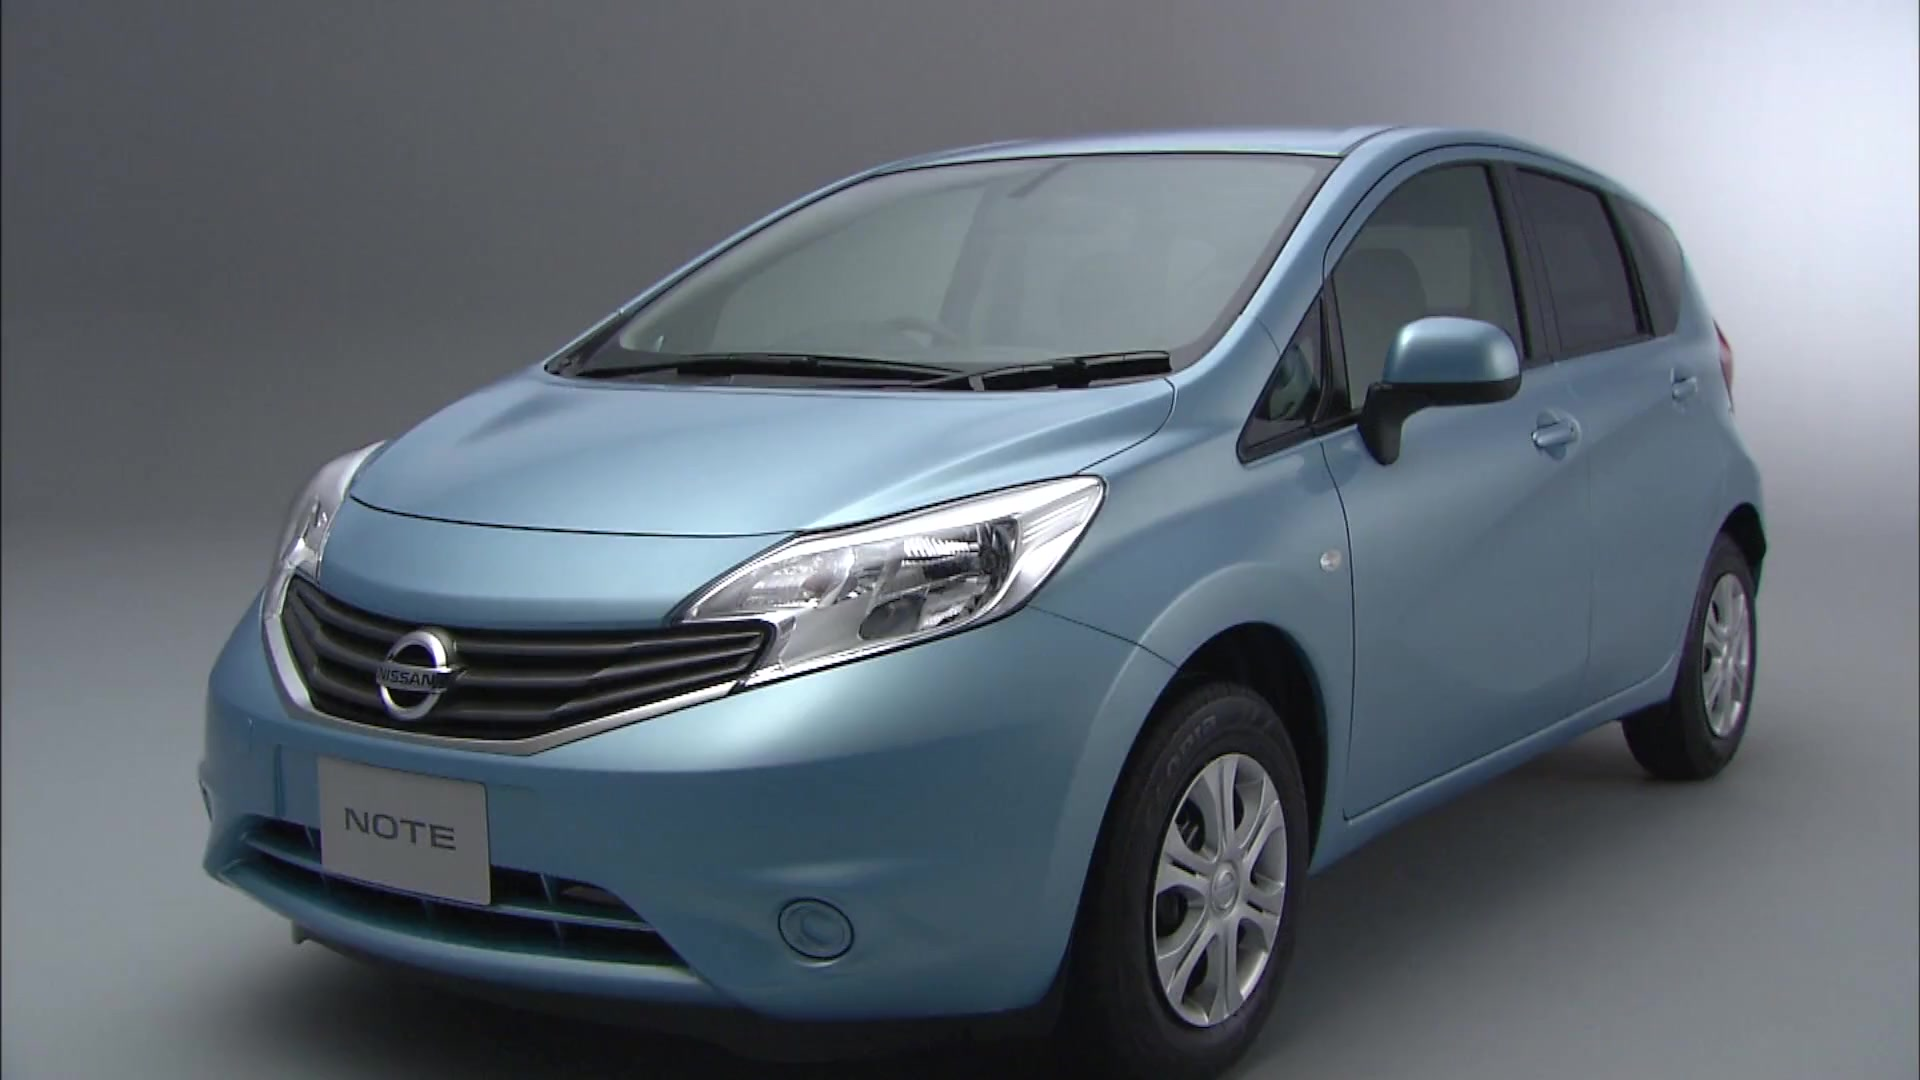 Introducing the All-New Nissan Note